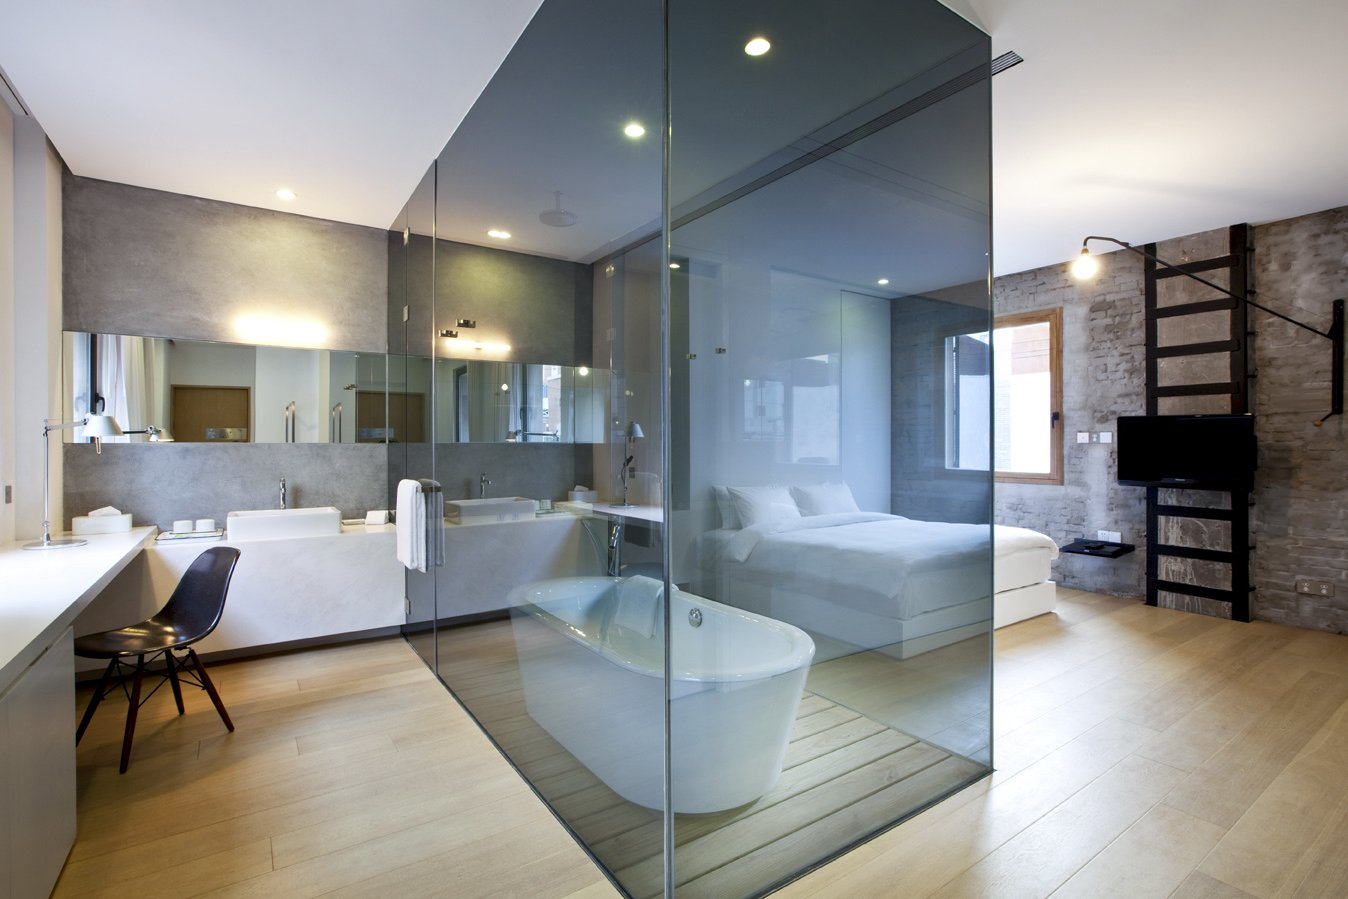 The interiors at Waterhouse at South Bund in Shanghai, China Tagged: Bath Room, Freestanding Tub, and Soaking Tub.  Photo 12 of 24 in 12 Modern Hotels in Historic Buildings Around the World